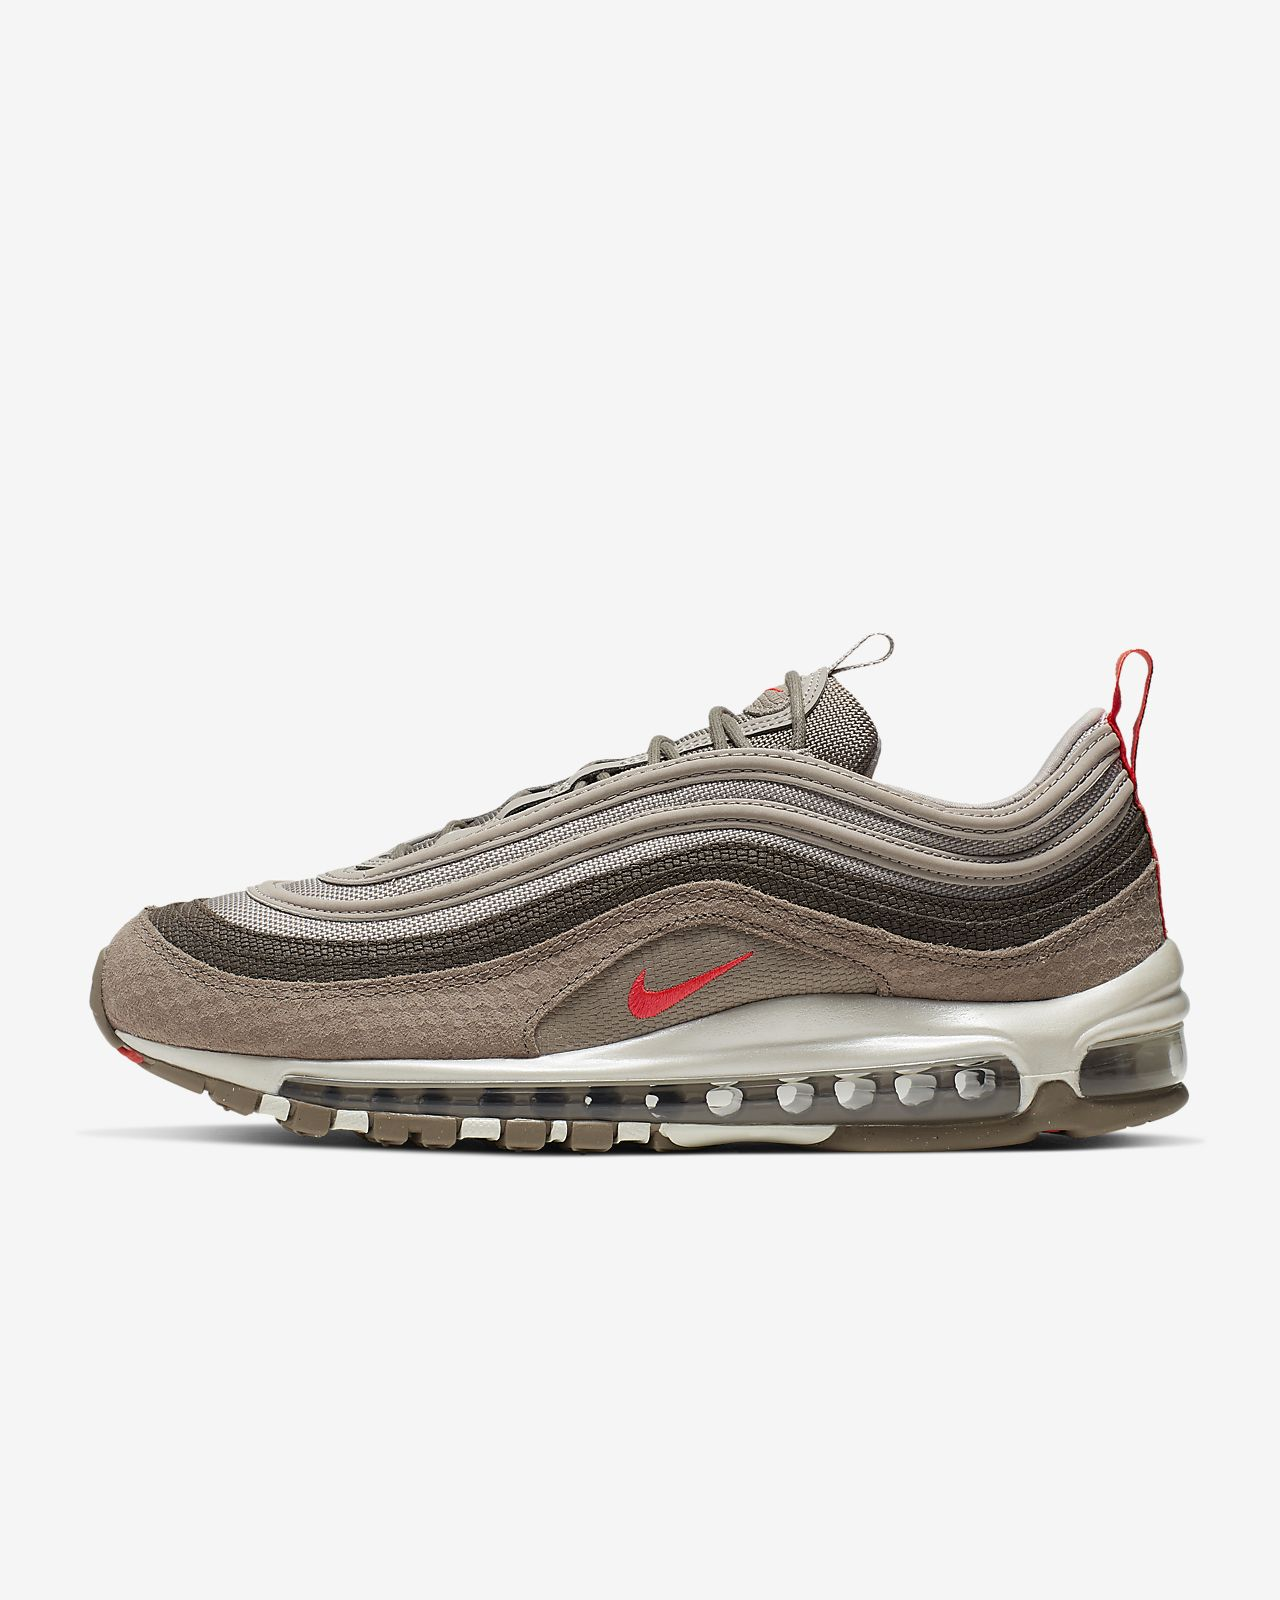 official photos 2ae2d ce919 ... Nike Air Max 97 Premium Men s Shoe